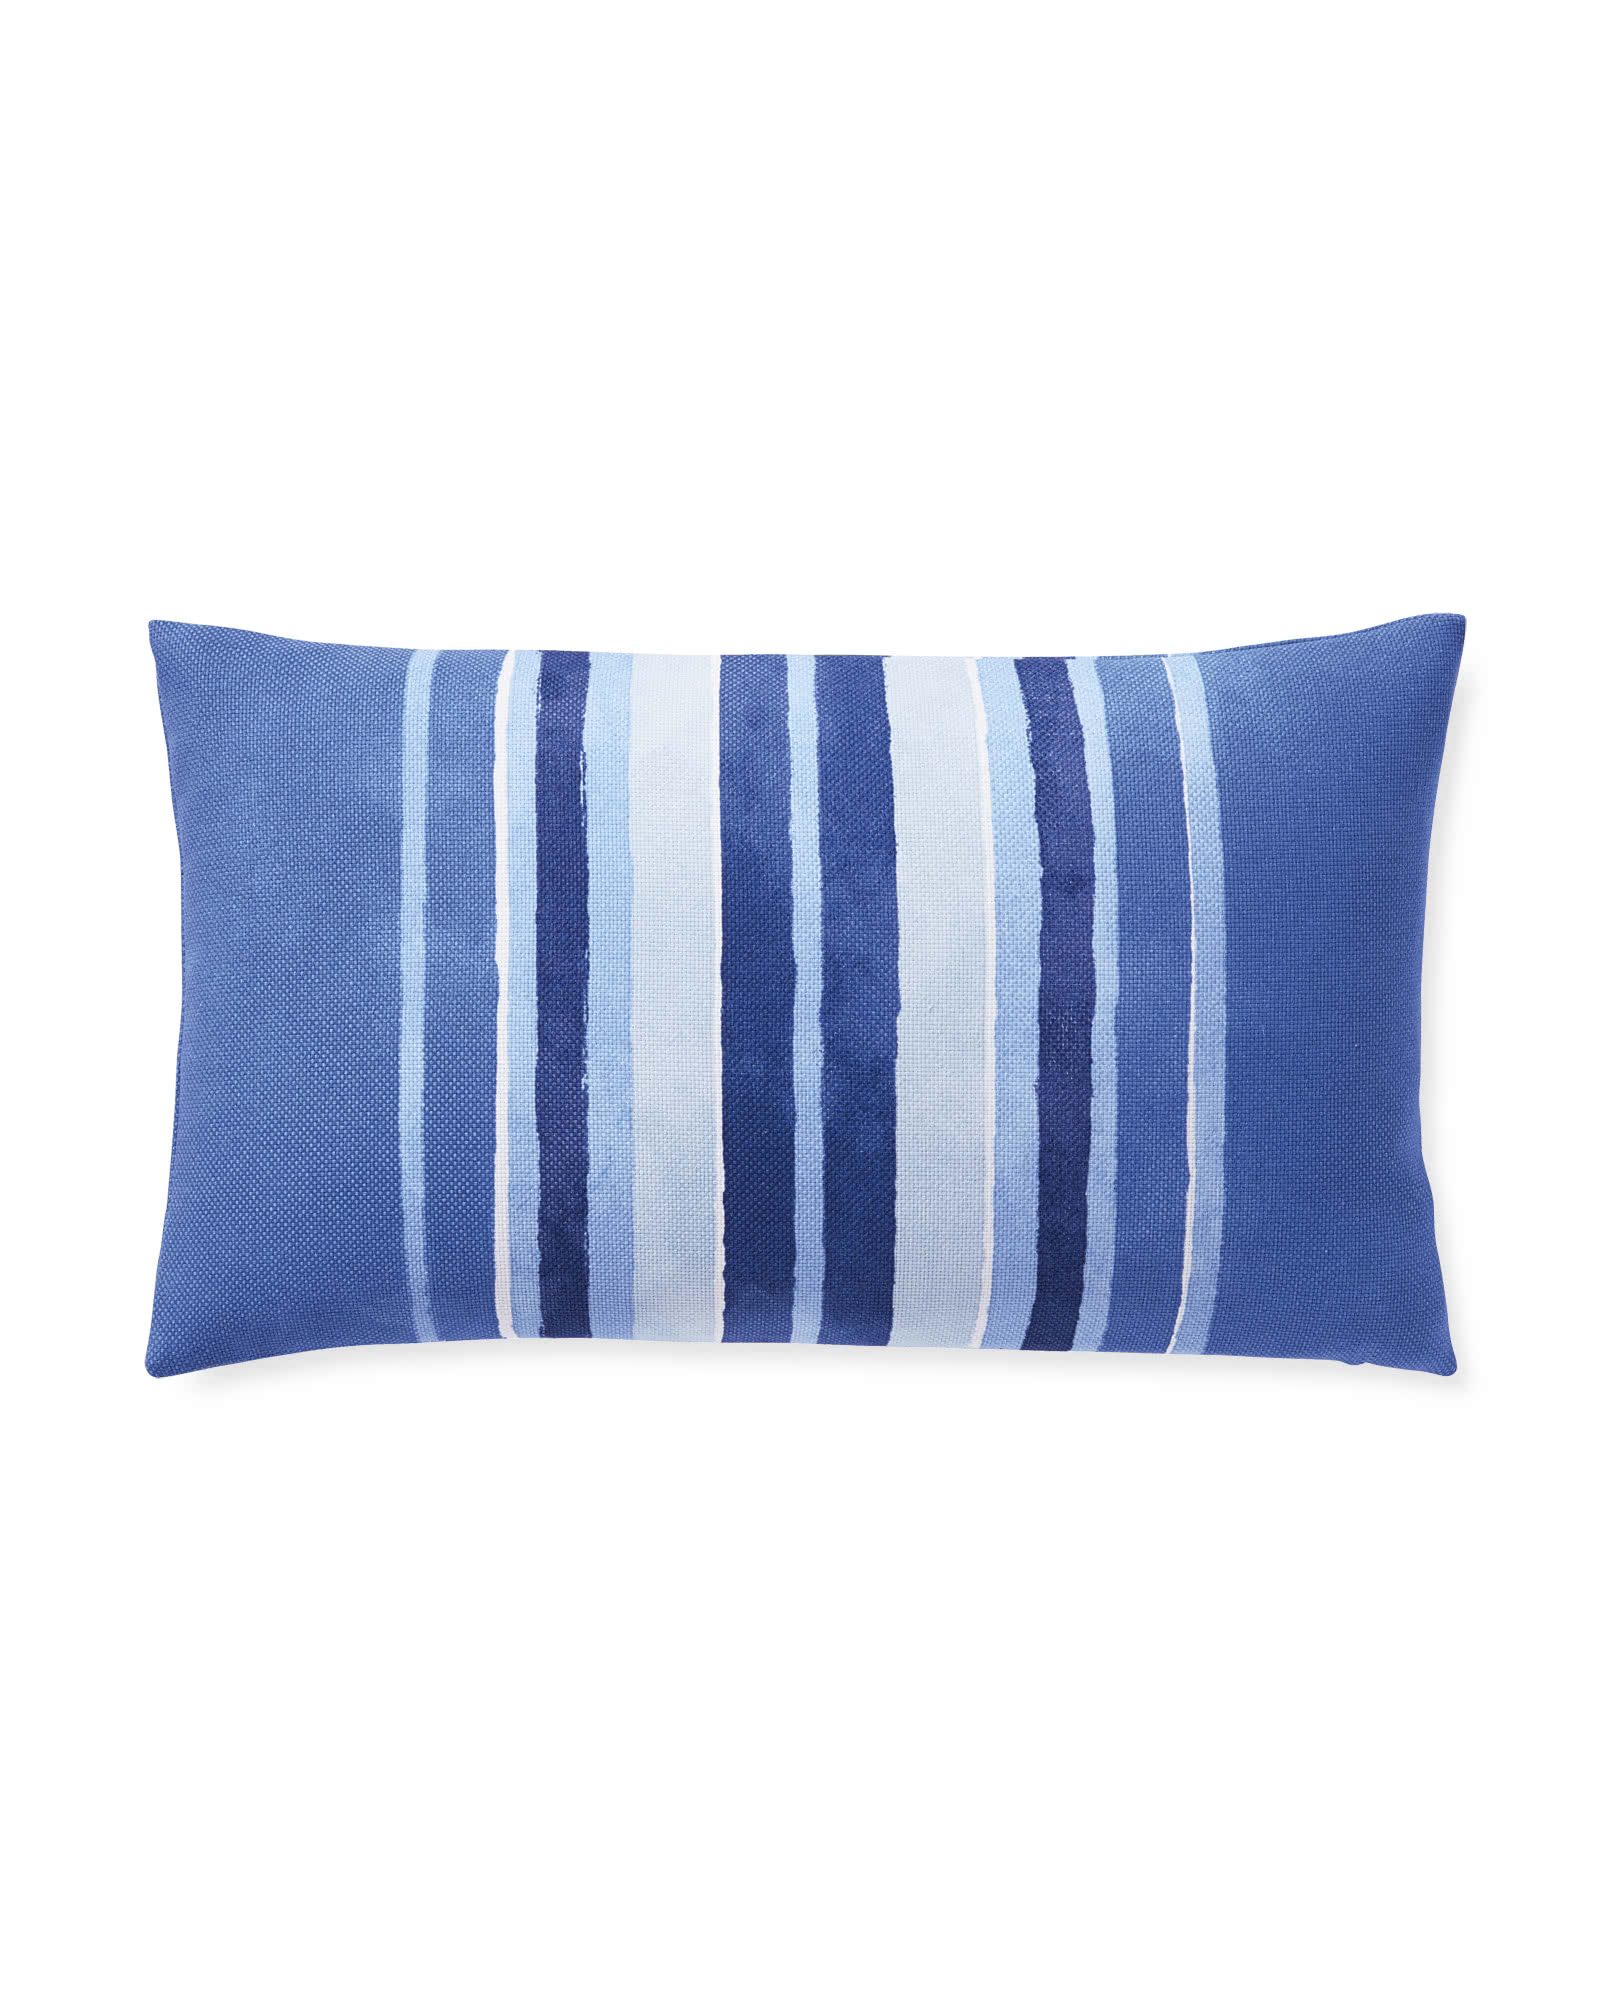 Sonoma Stripe Outdoor Pillow Cover, Blue